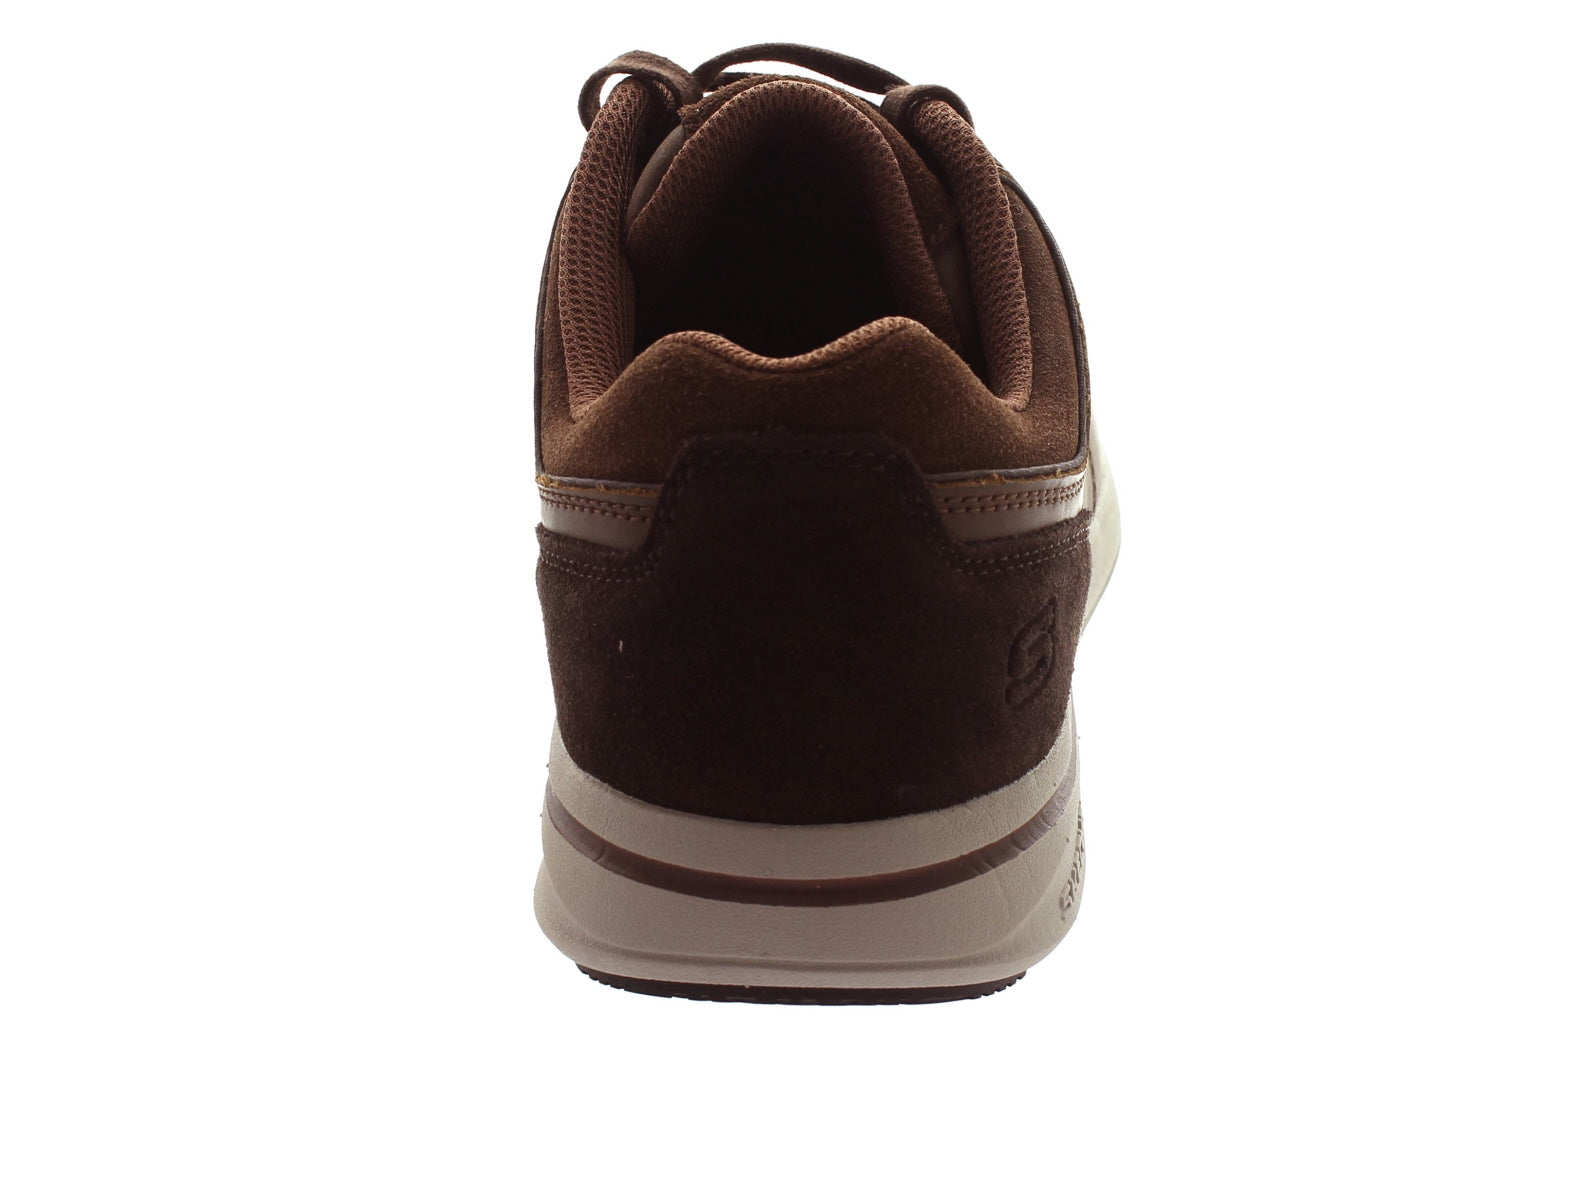 Skechers Relaxed Fit 65406 in Brown back view